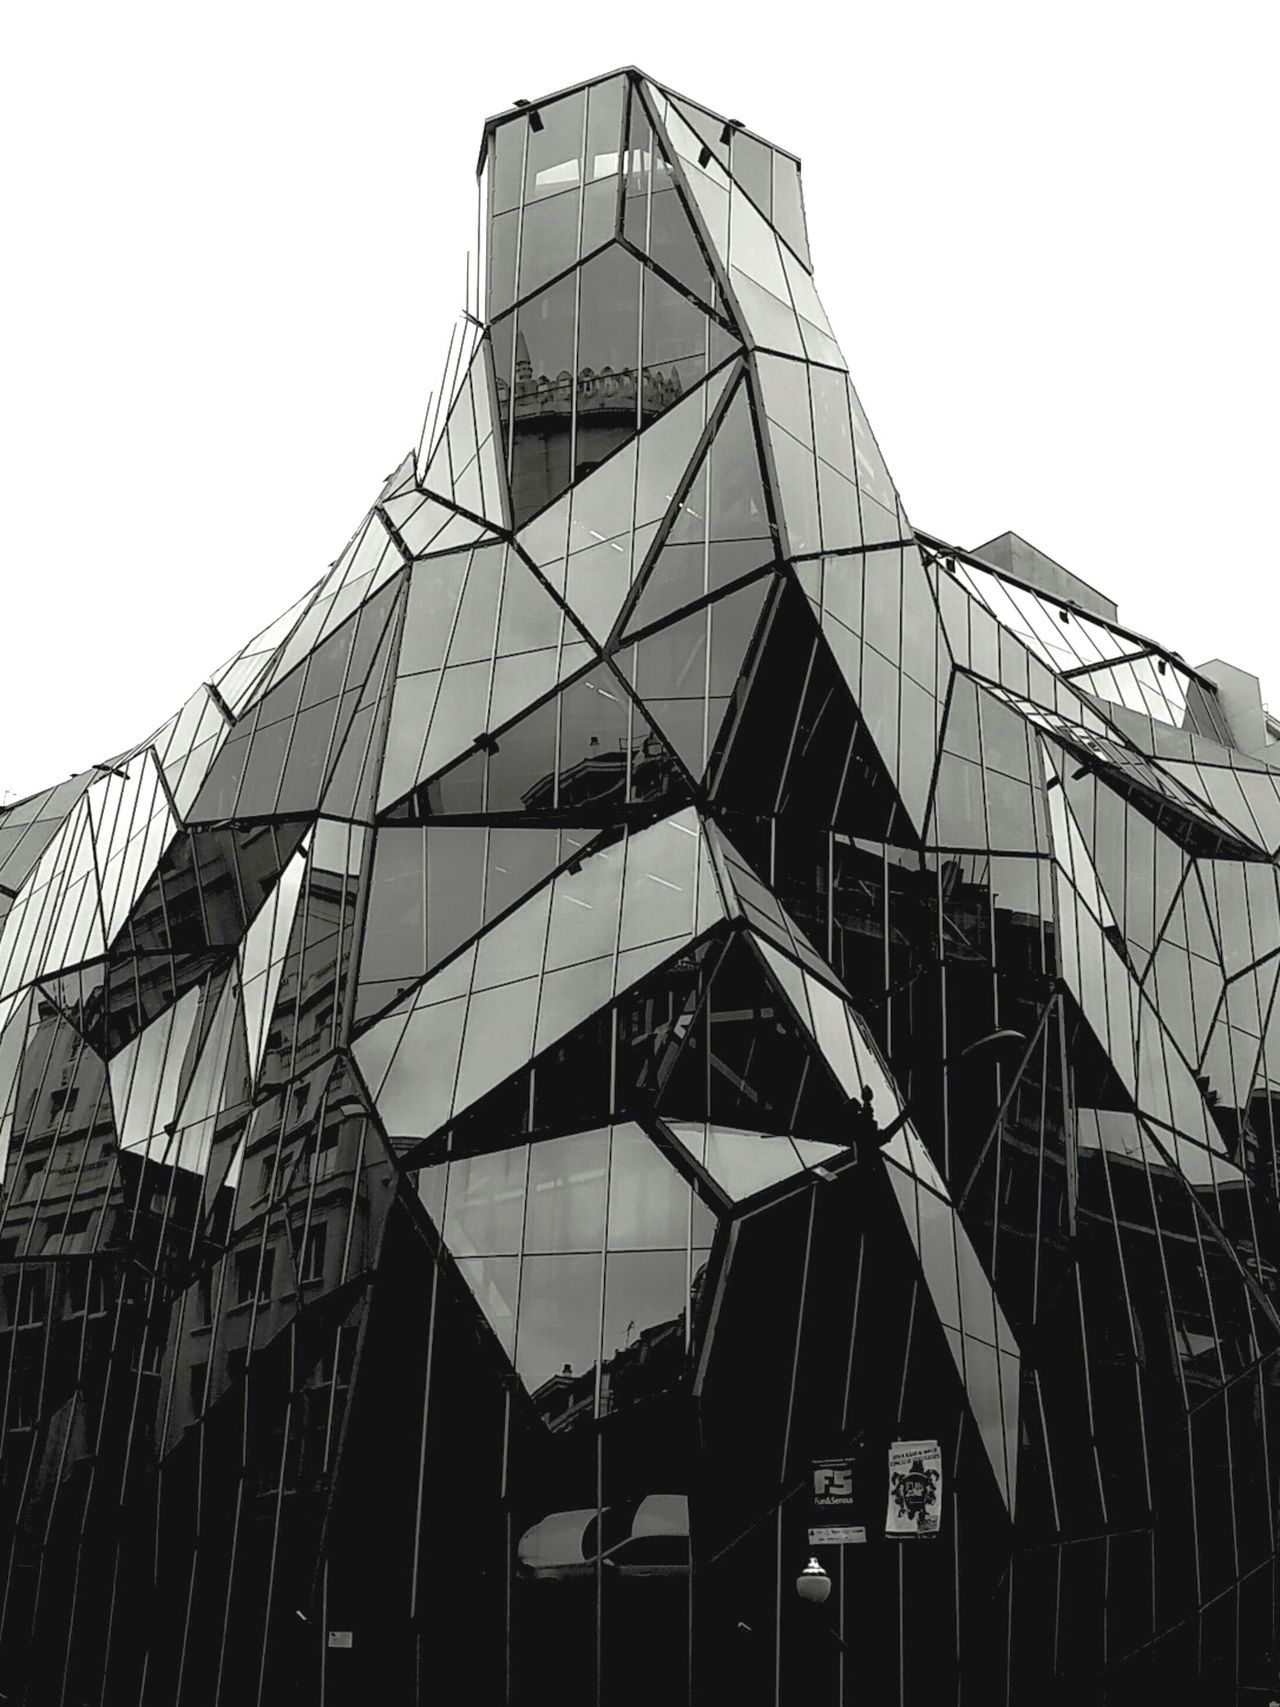 Built Structure Architecture Business Finance And Industry Sky Outdoors No People Building Exterior Day Bilbao Bilbaolovers Bilbaoarquitecture Crystal Reflections The City Light